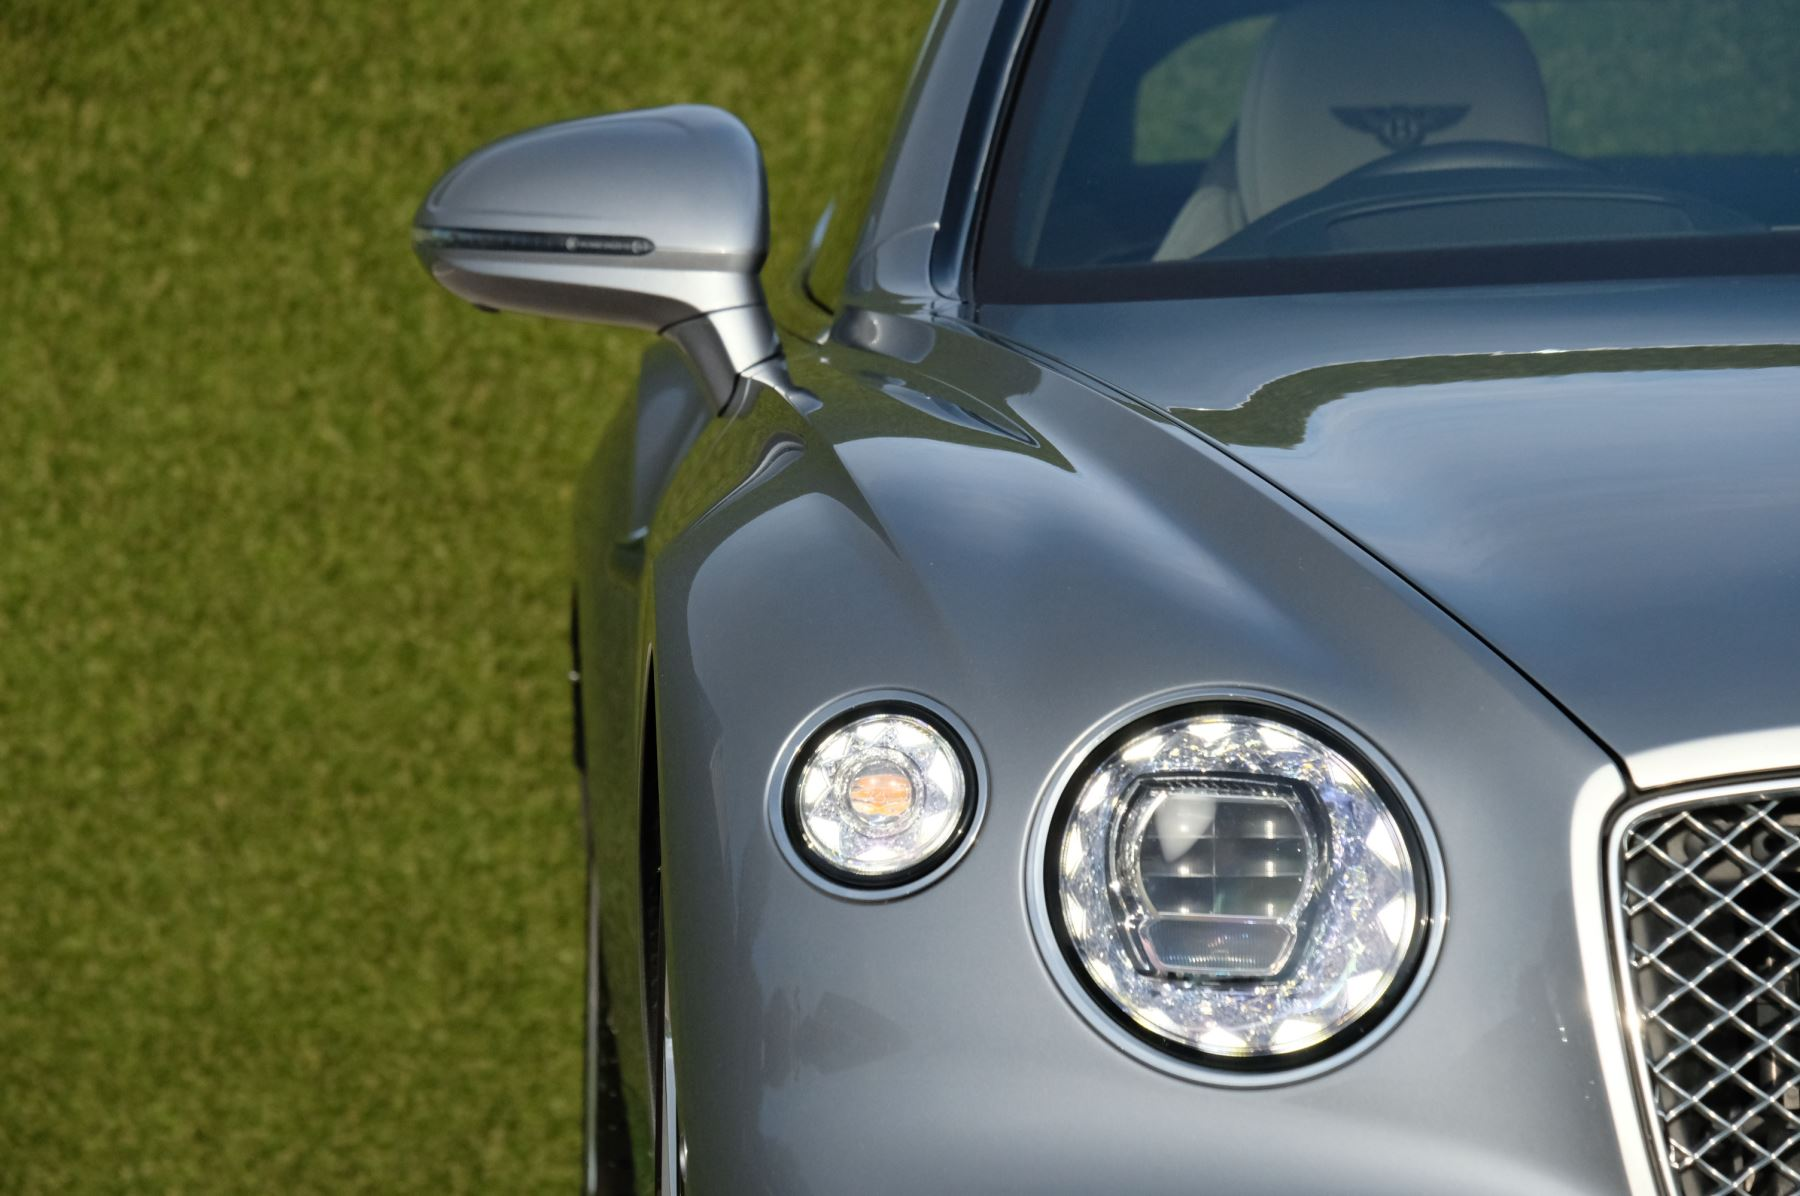 Bentley Continental GT 6.0 W12 2dr Mulliner Driving Specification image 7